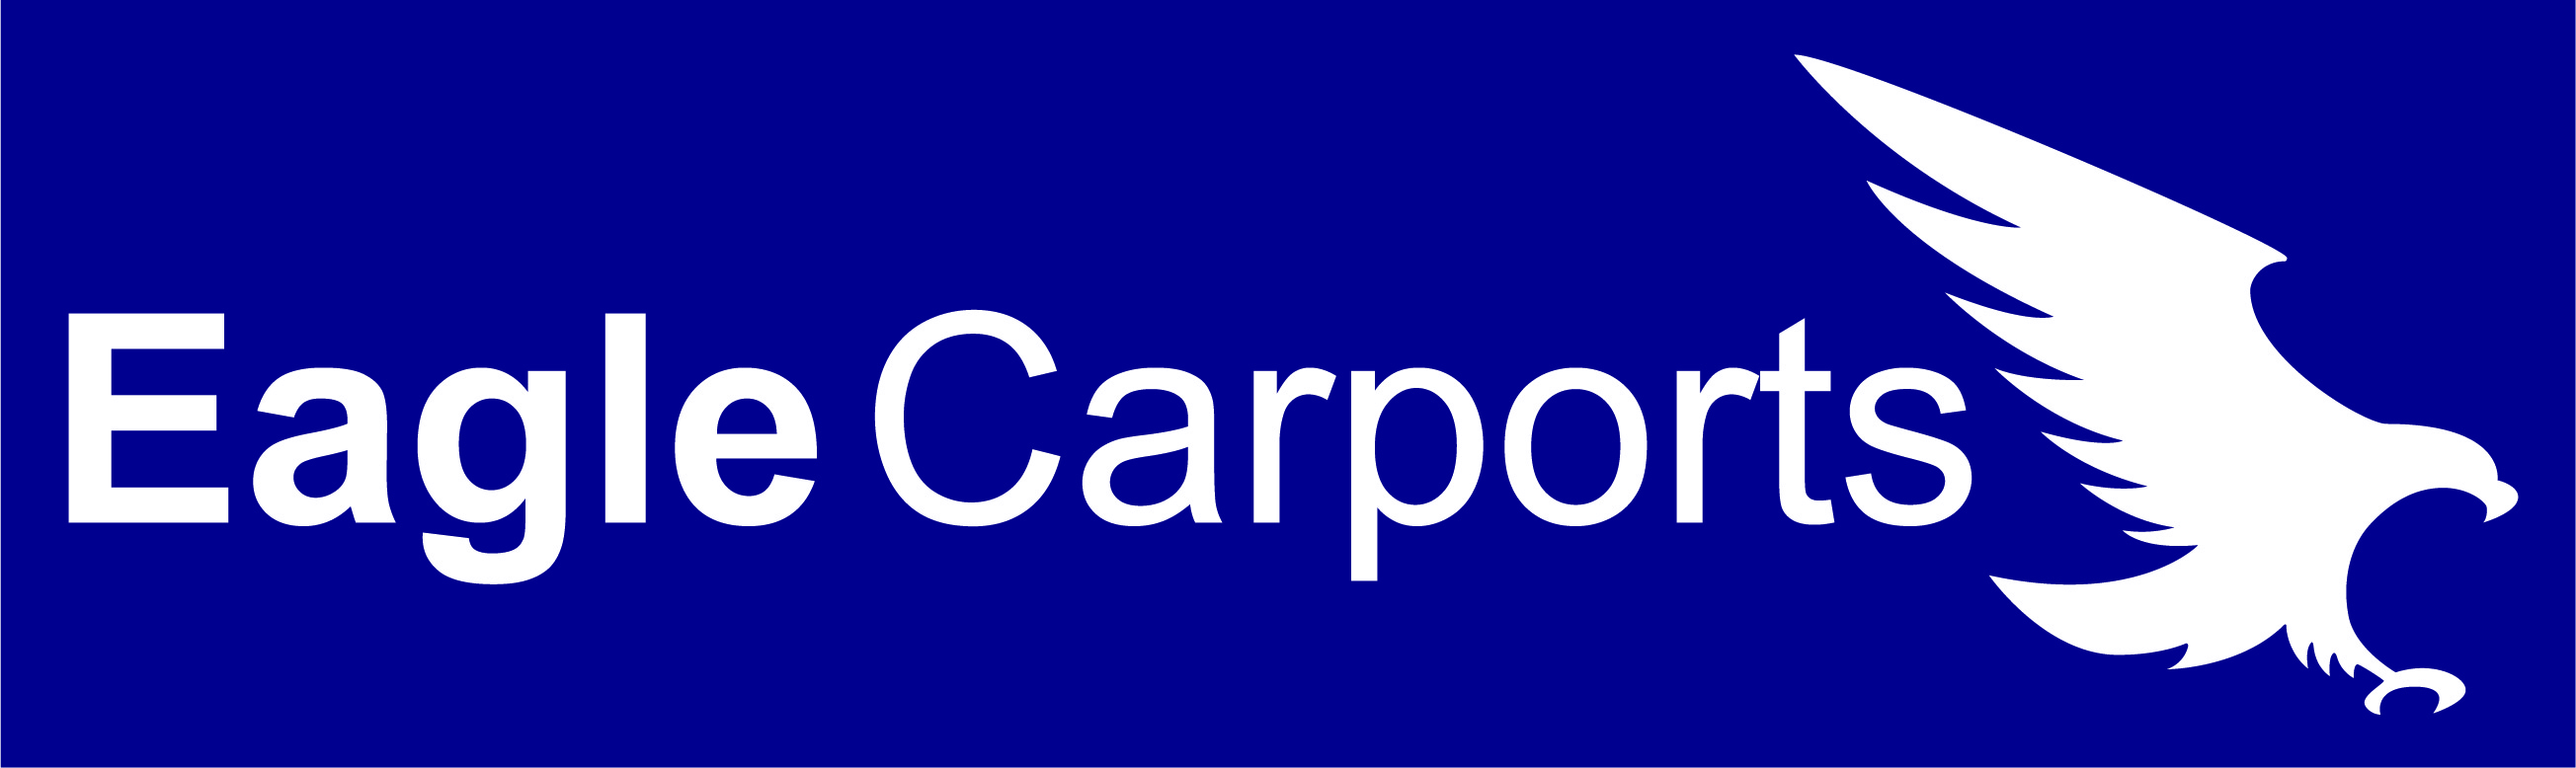 Logo-Eagle Carports